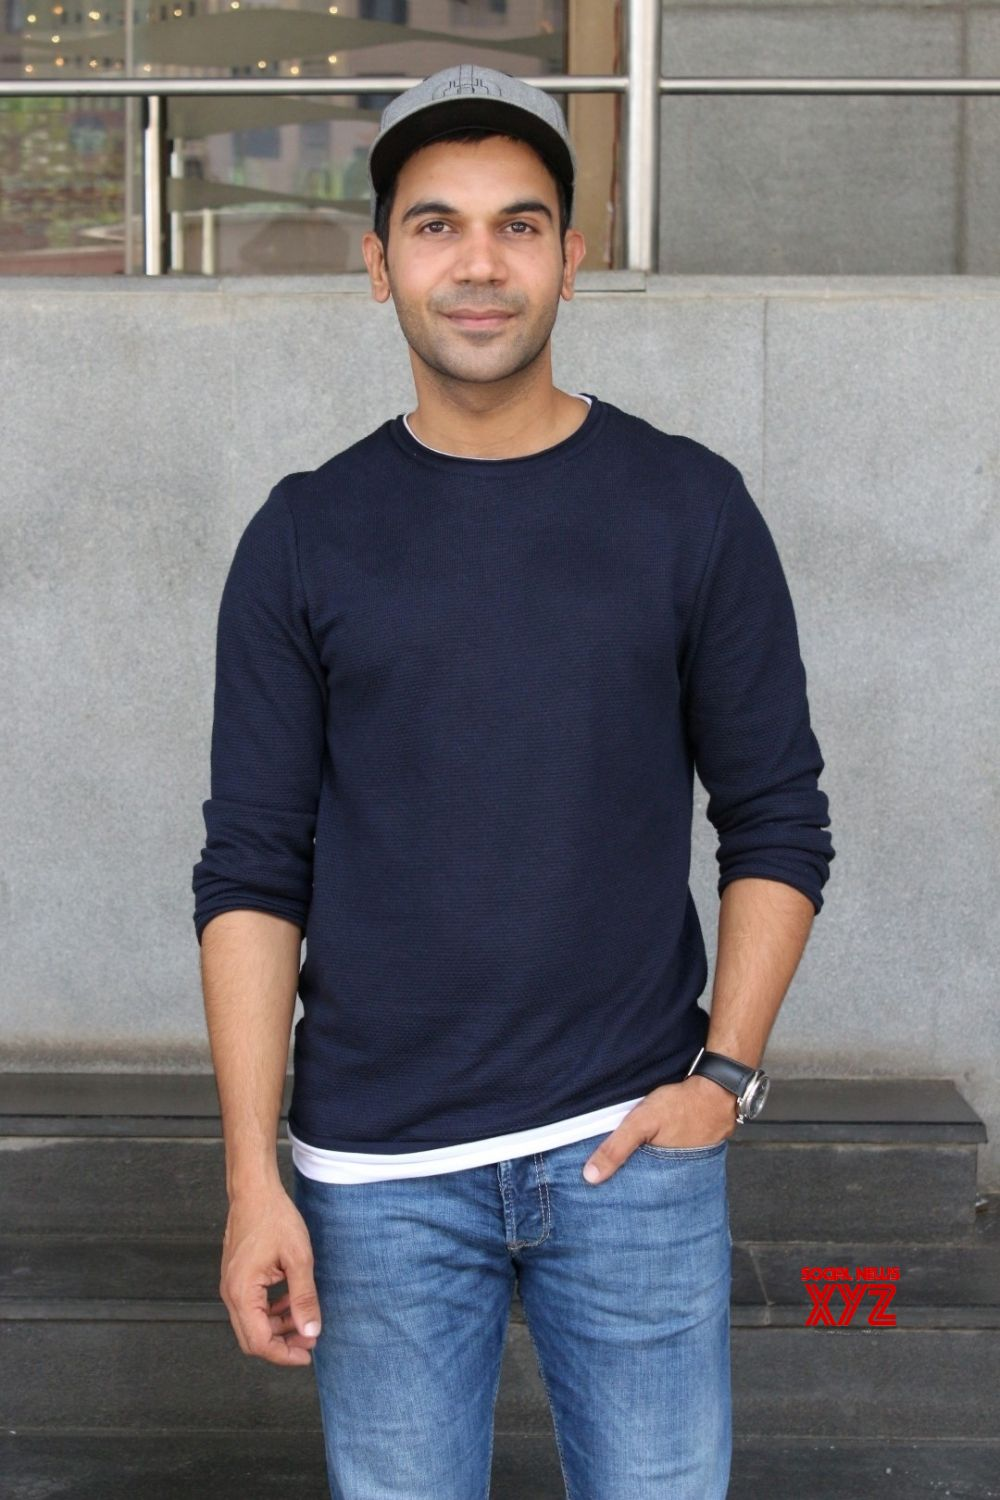 Image result for rajkummar rao t shirt